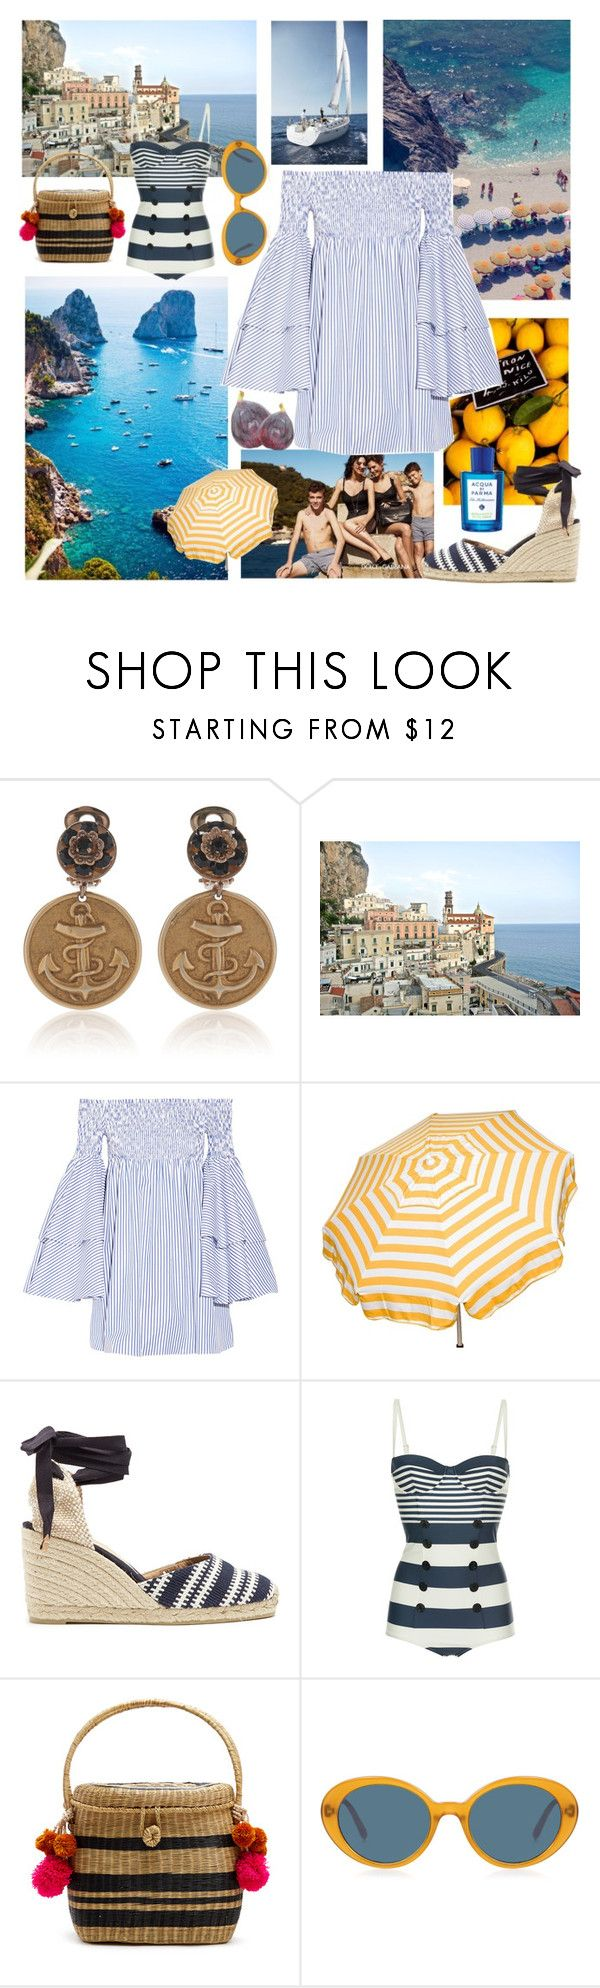 """""""Sapore di Capri"""" by sophier ❤ liked on Polyvore featuring WALL, Dolce&Gabbana, Dolce Vita, Caroline Constas, Parasol, Castañer, Sophie Anderson, Oliver Peoples and Acqua di Parma"""